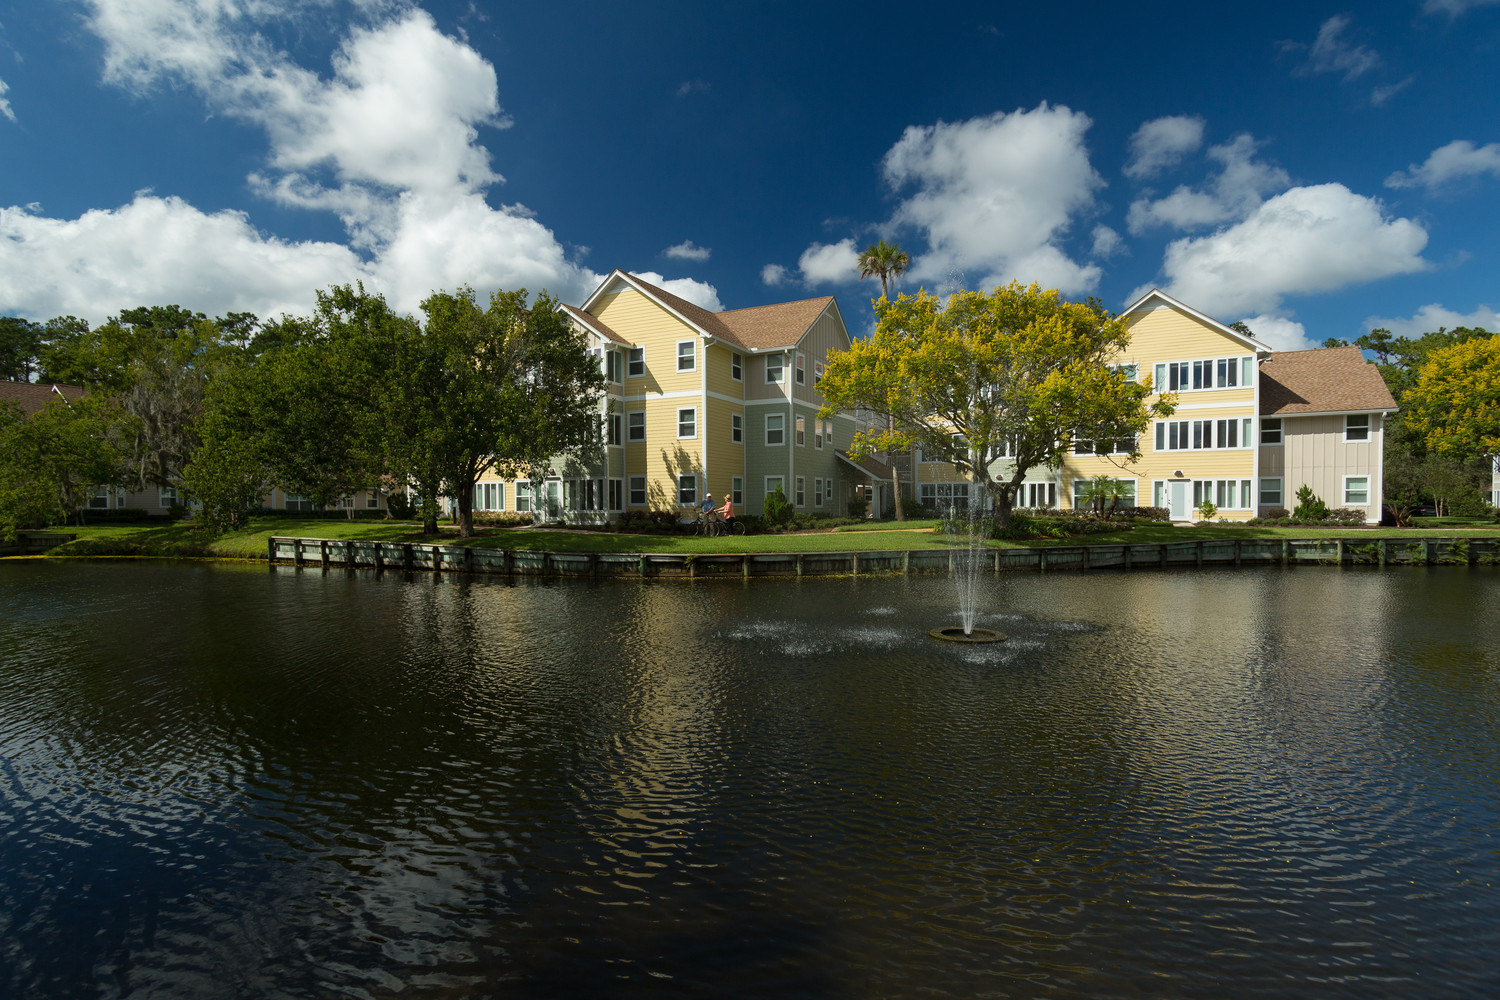 Vicar's Landing is located within the Sawgrass Players Club in Ponte Vedra Beach.